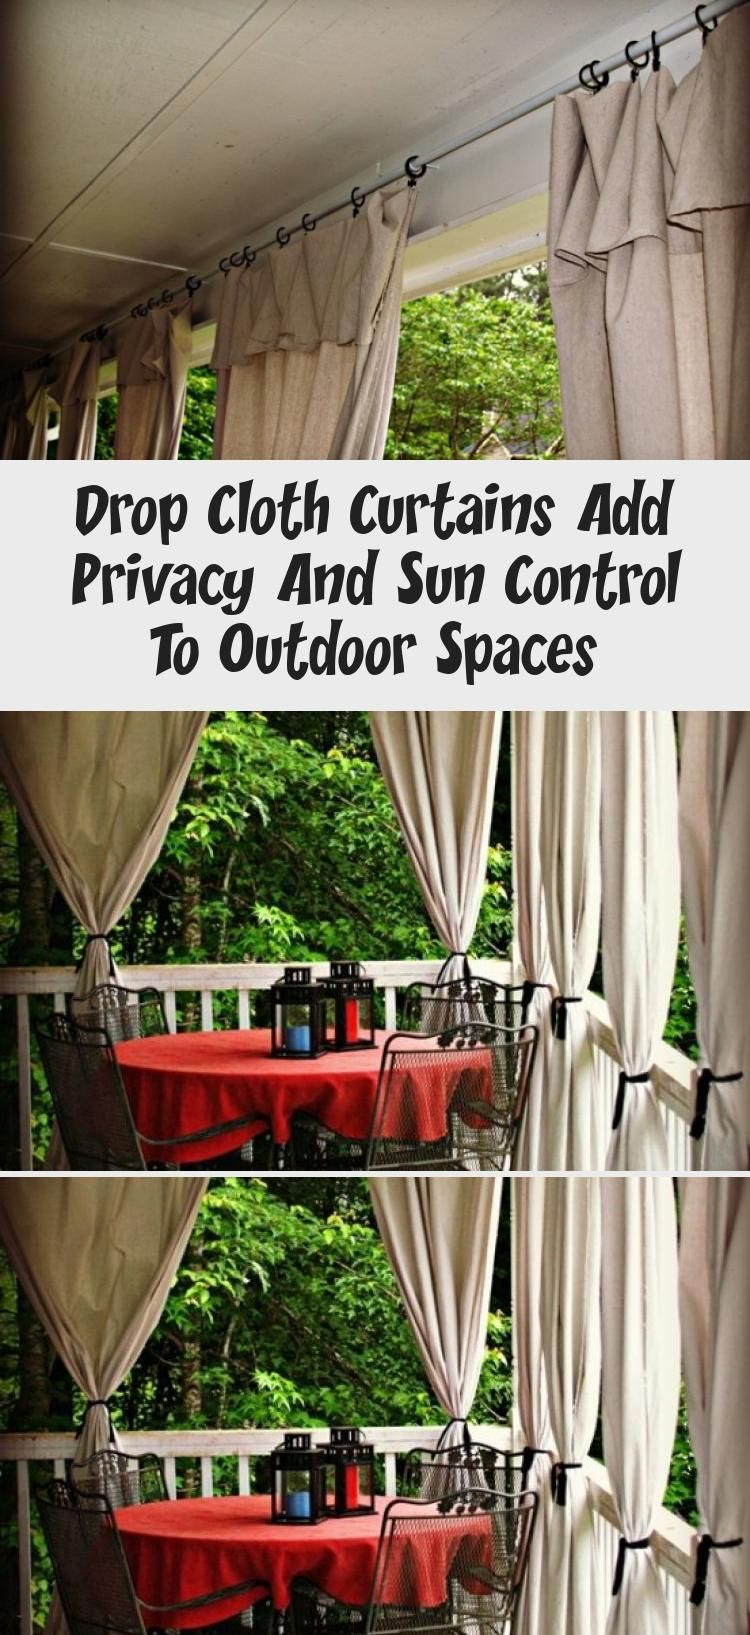 Drop cloth curtains add privacy and sun control to outdoor